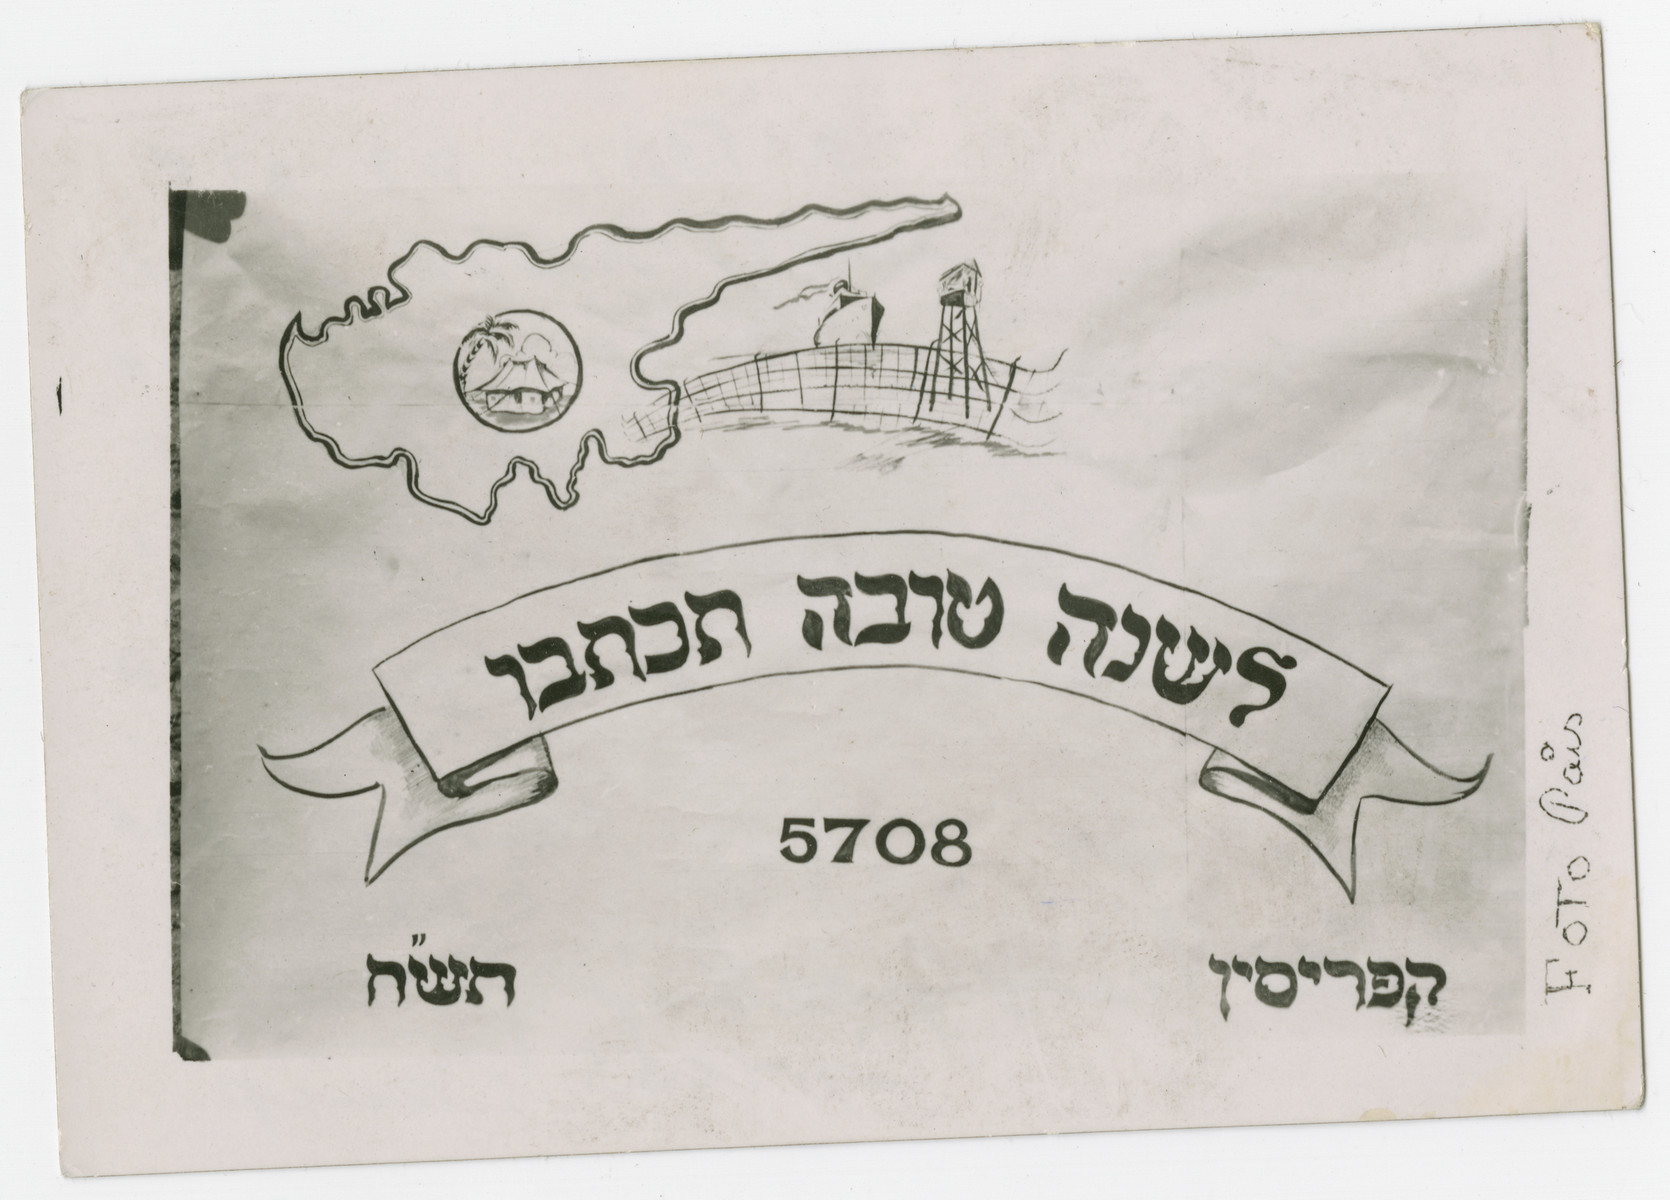 Jewish New Year's card from the Cyprus internment camp.